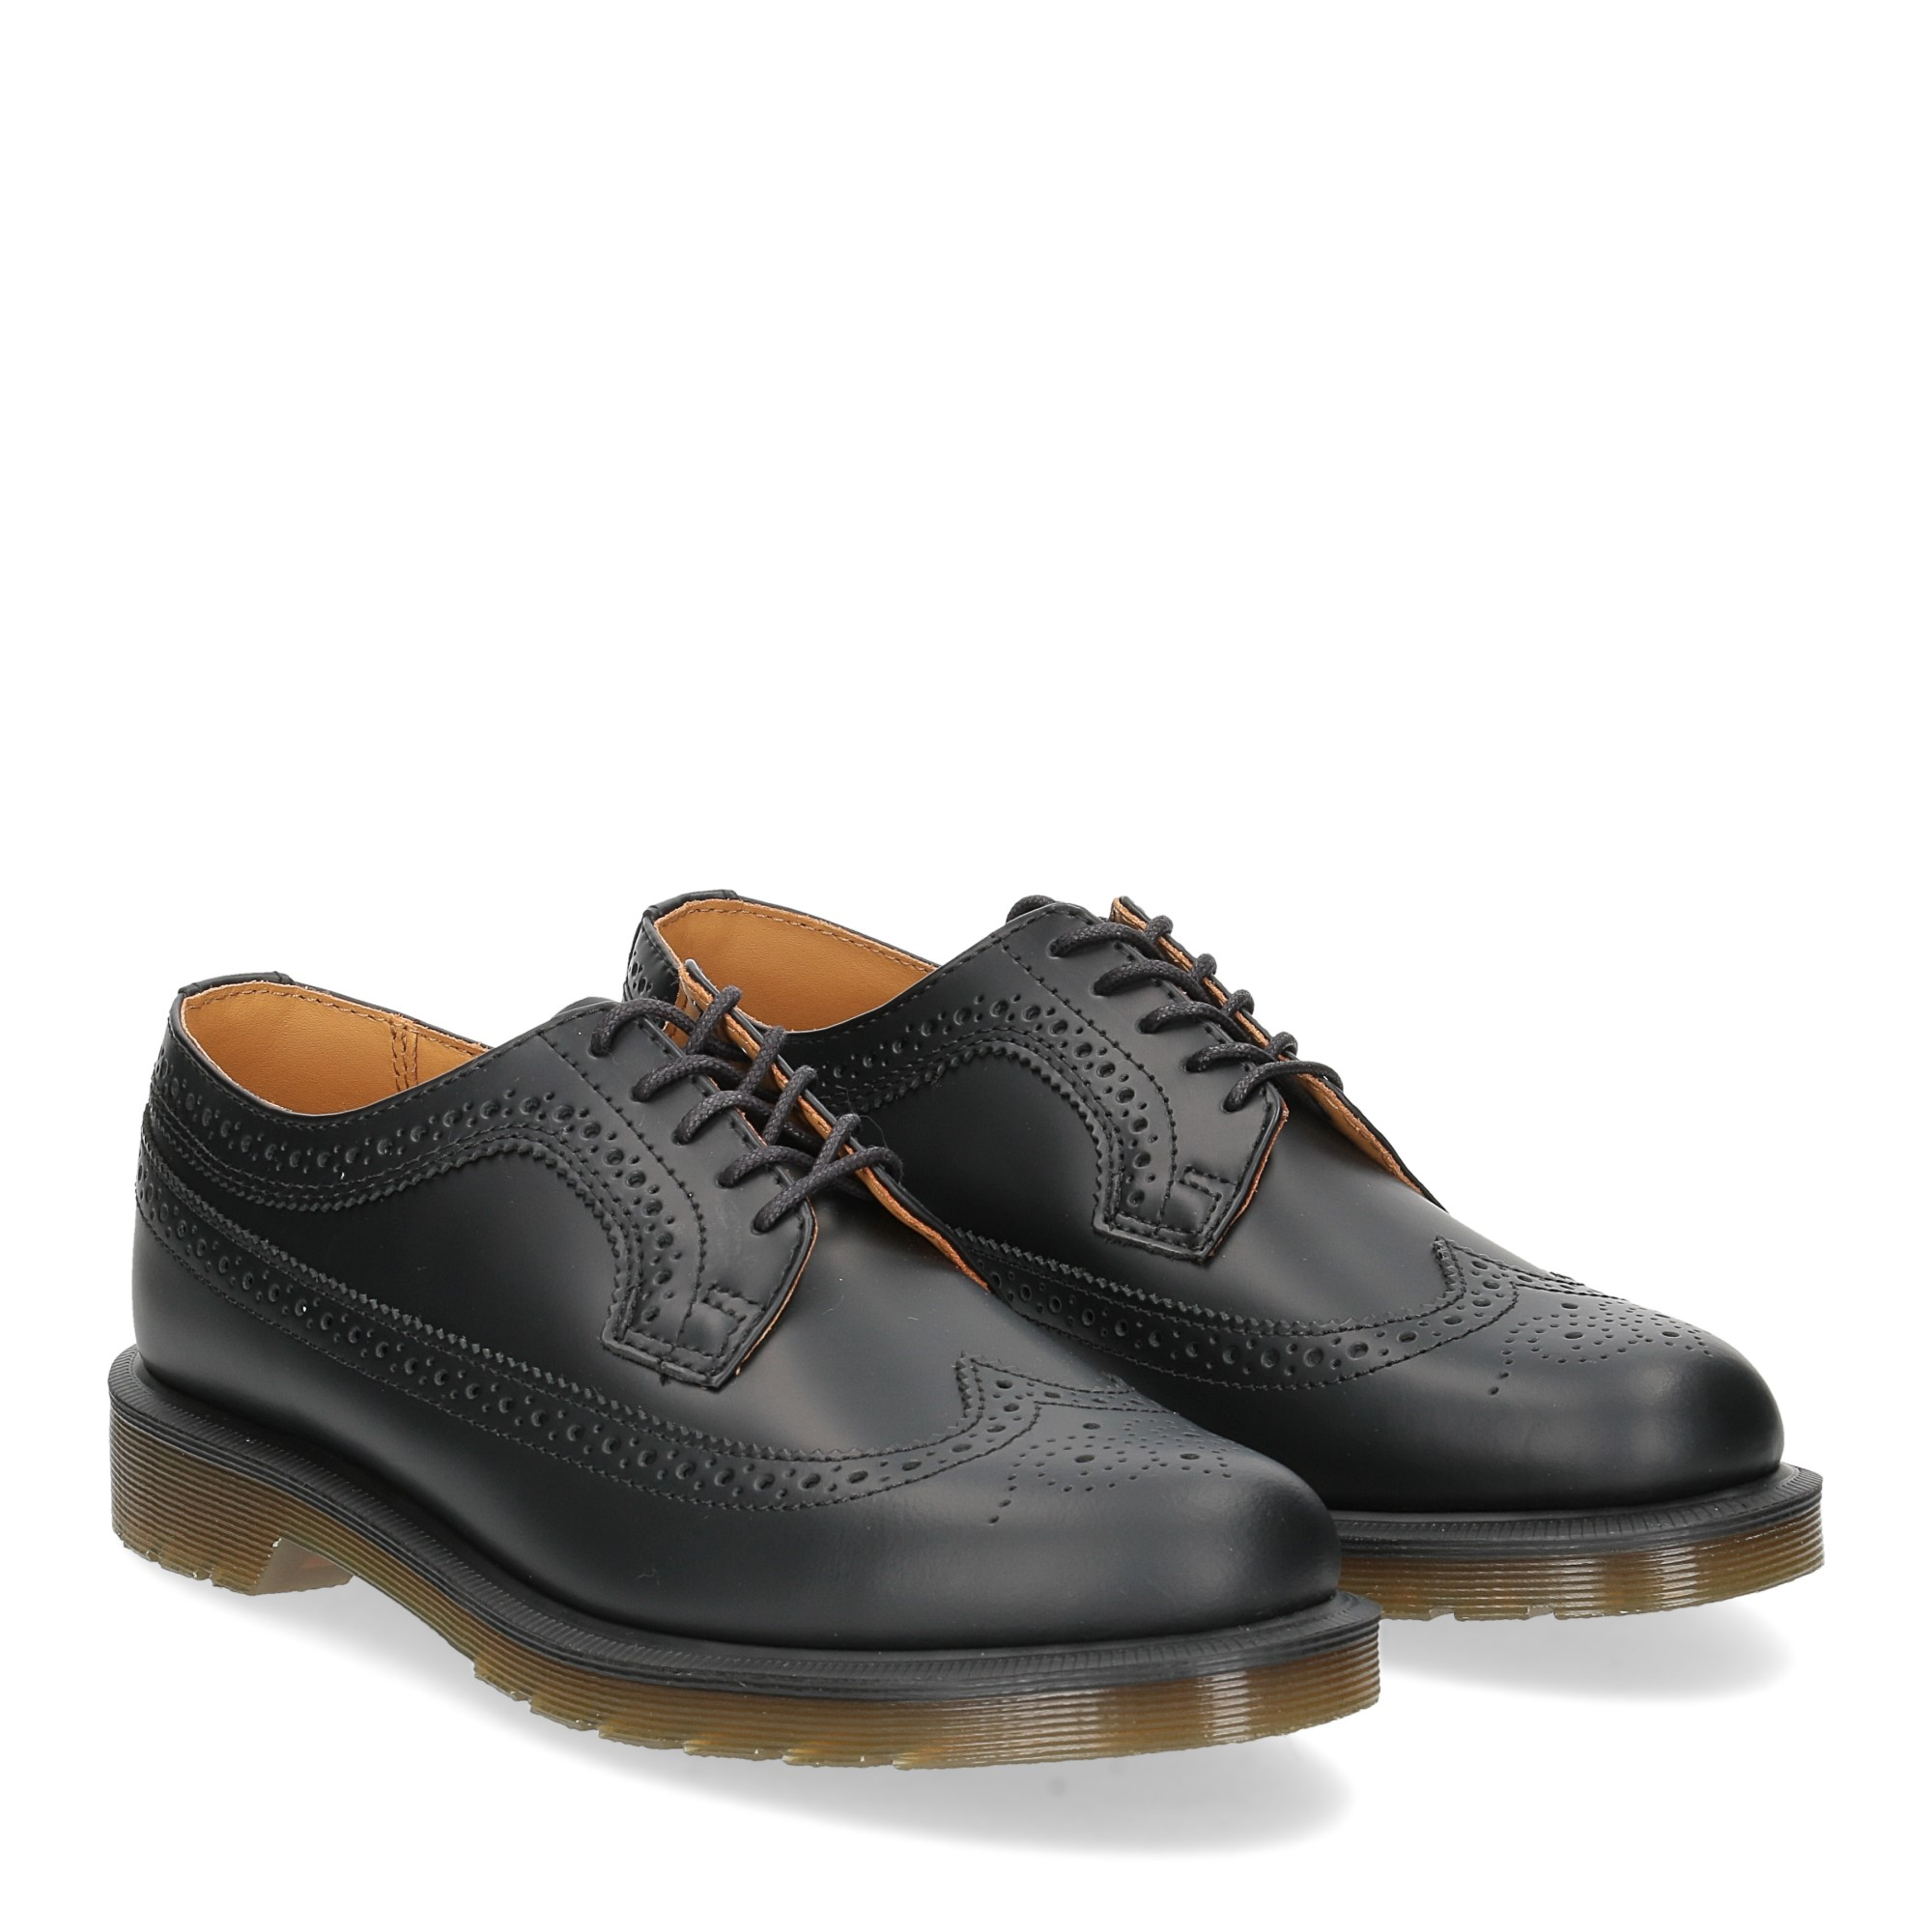 Dr. Martens Stringata Uomo 3989 brogue black smooth